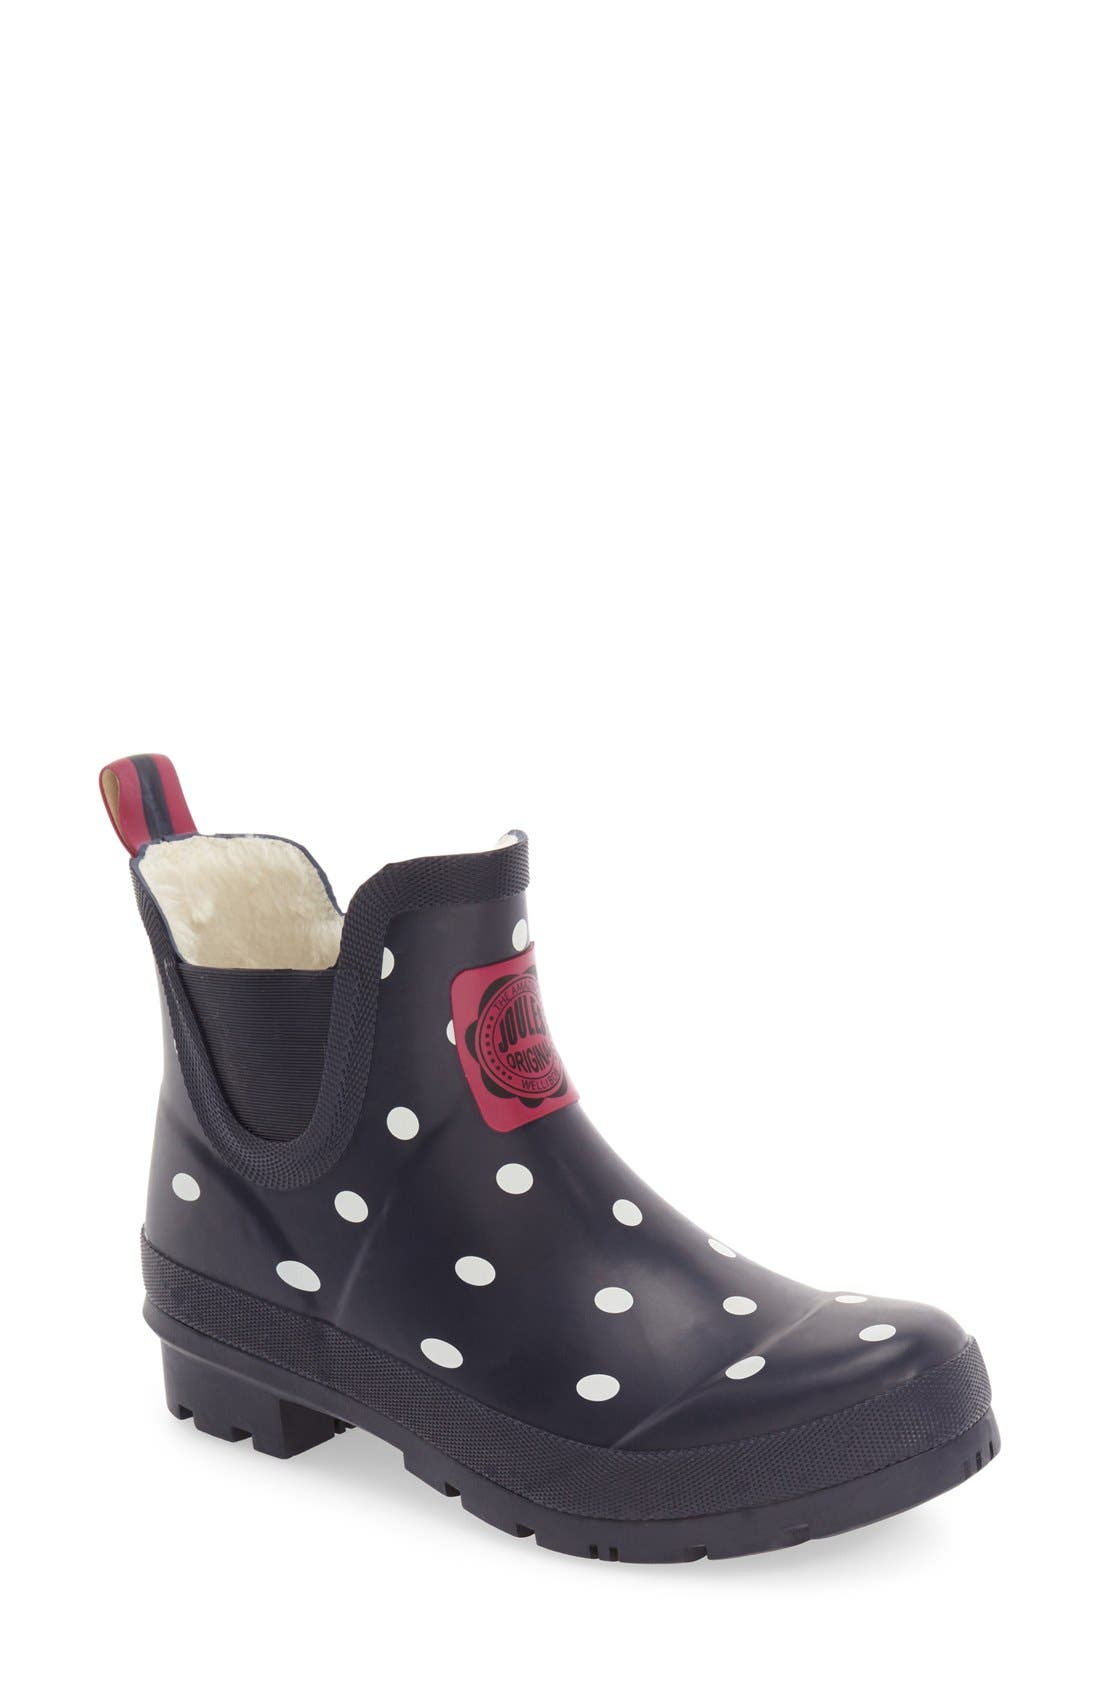 Alternate Image 1 Selected - Joules 'Wellibob' Short Rain Boot (Women)